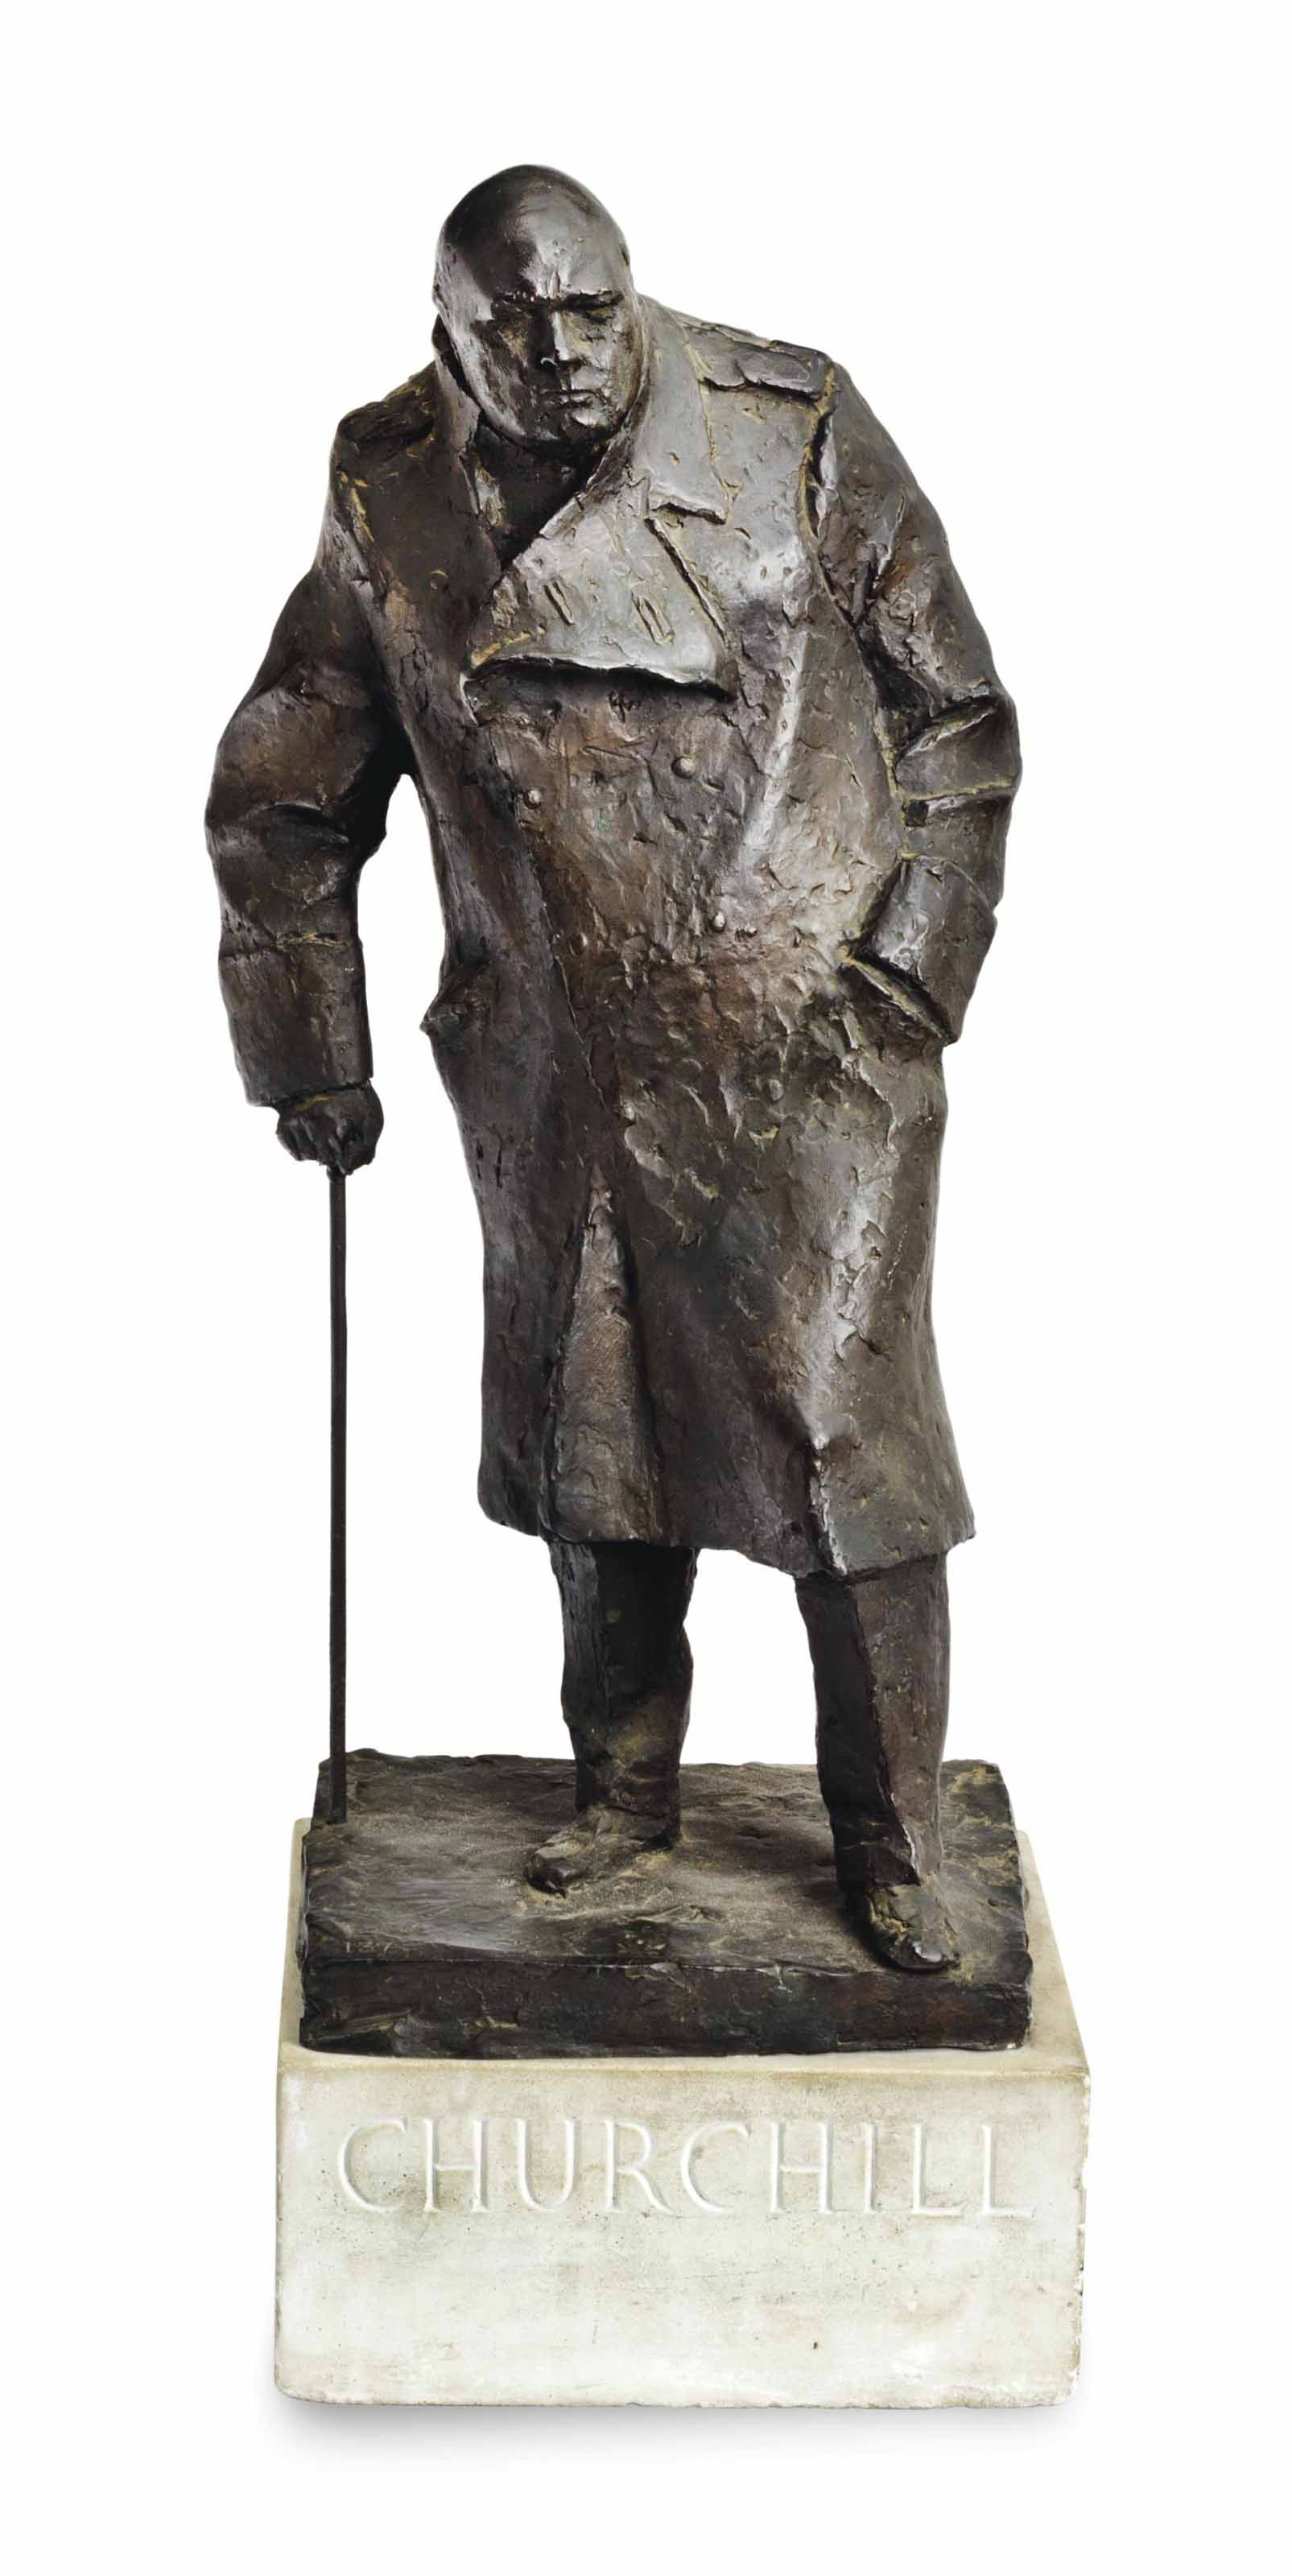 Sir Winston Churchill, maquette for the monument in Parliament Square